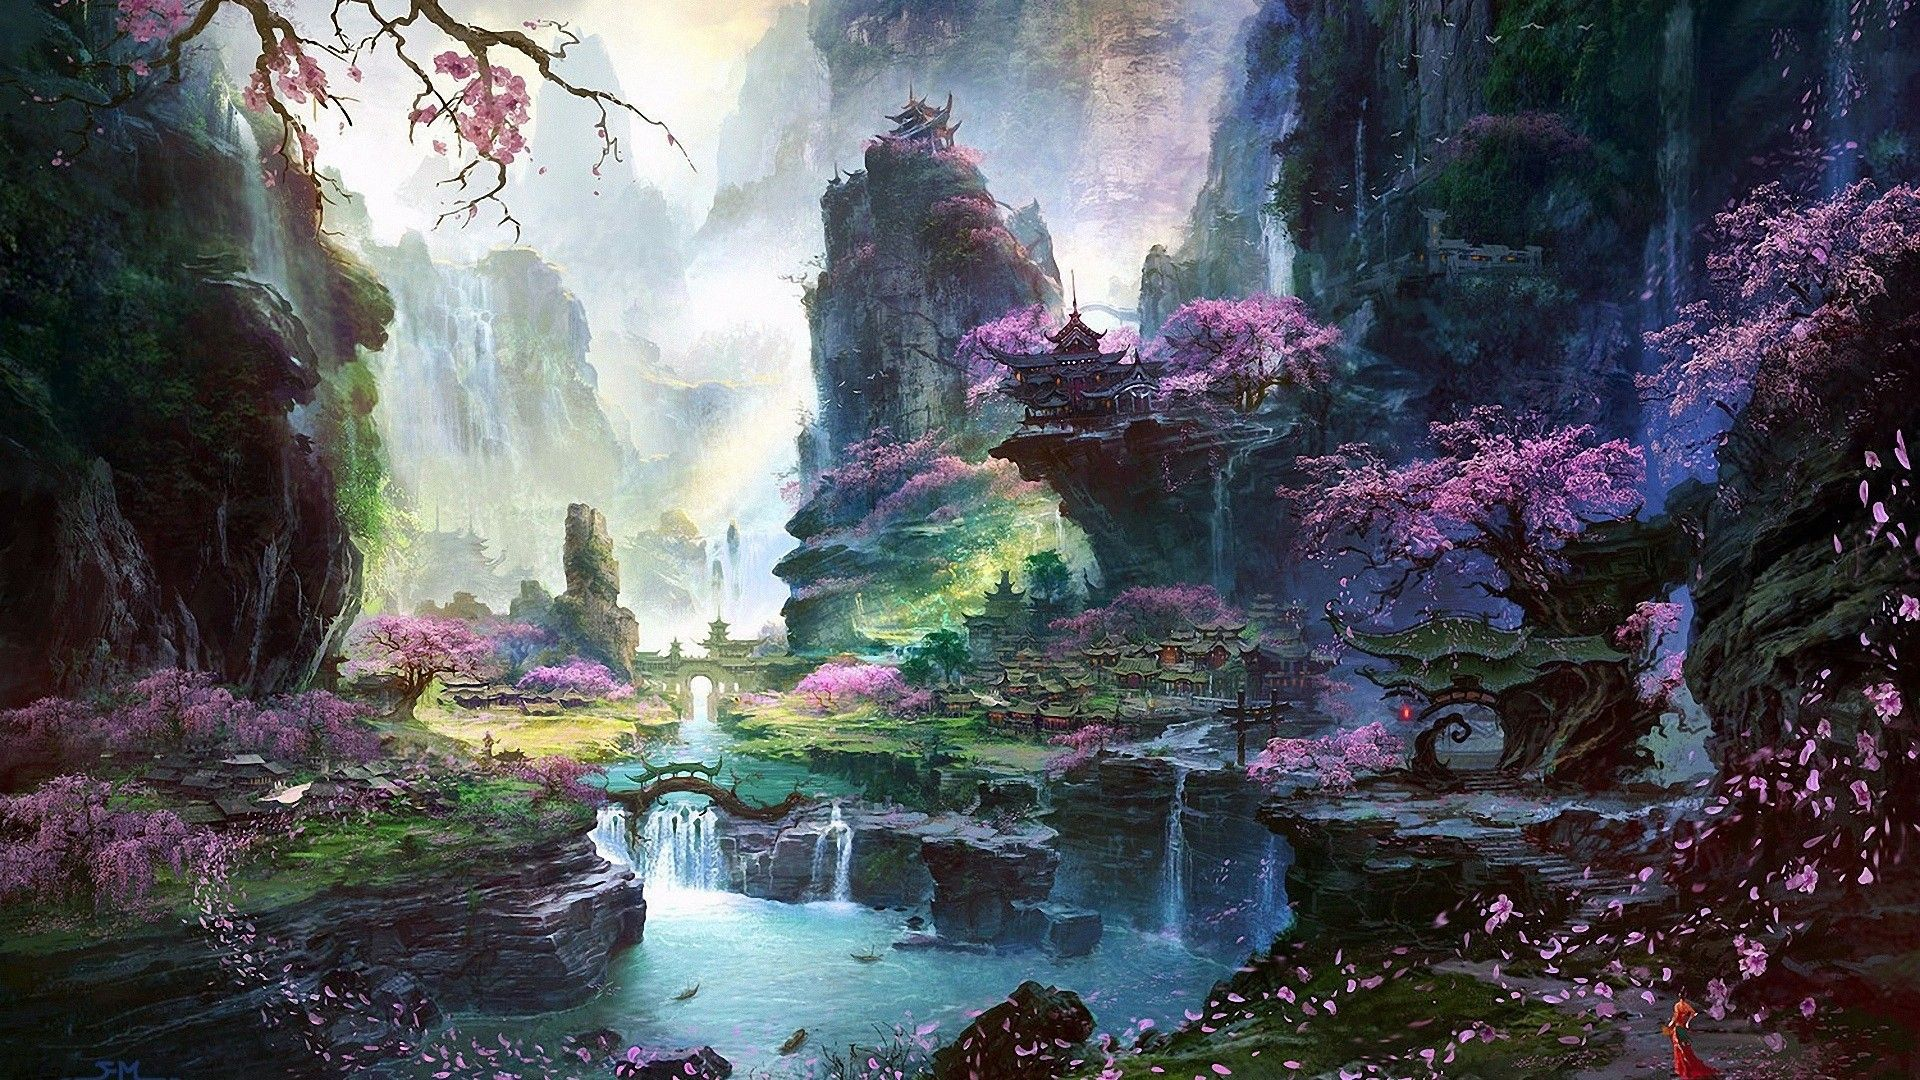 Artwork Bridges Cherry Blossoms Fan Ming Fantasy Art Landscapes Mountains Waterfalls Pictures And Images